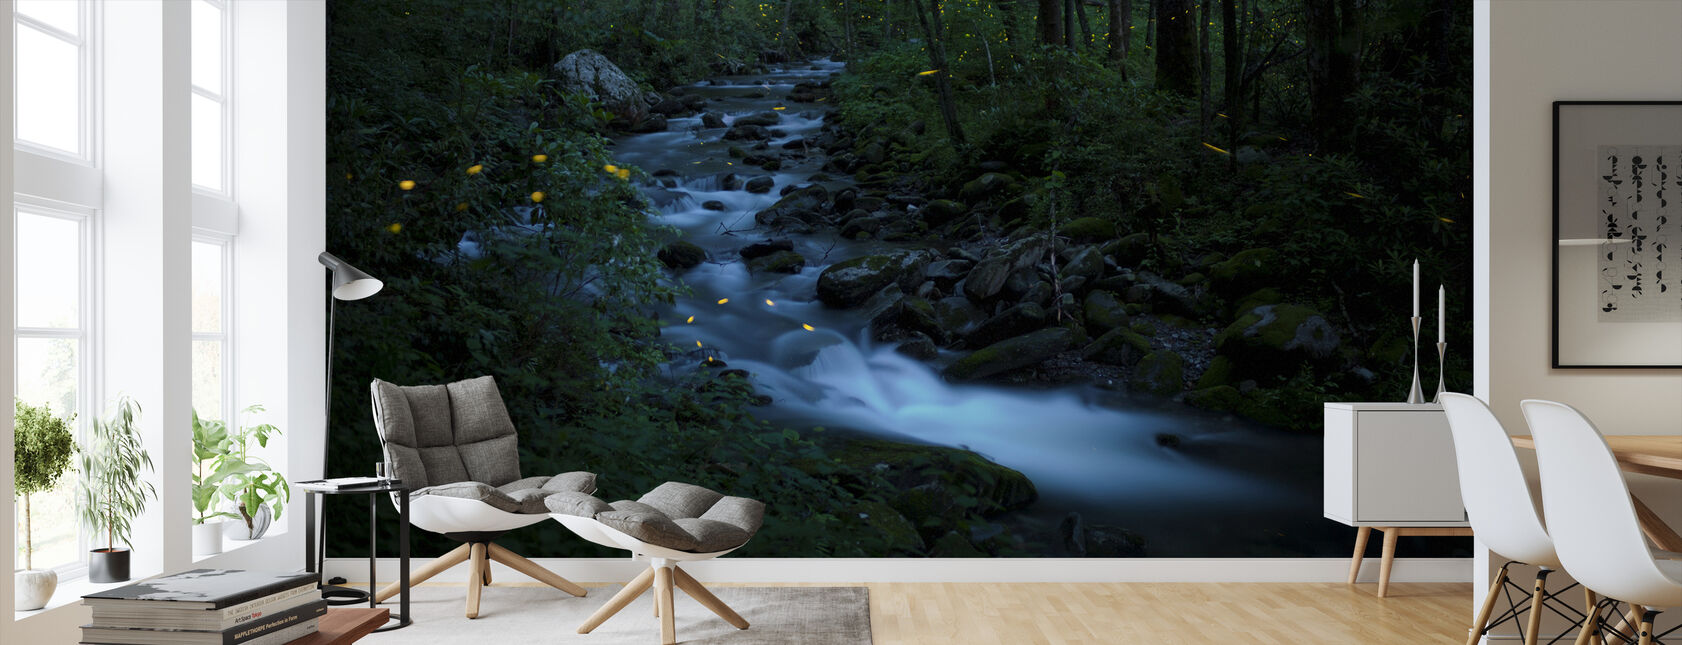 Syncronous Fireflies, Great Smoky Mountains National Park - Wallpaper - Living Room